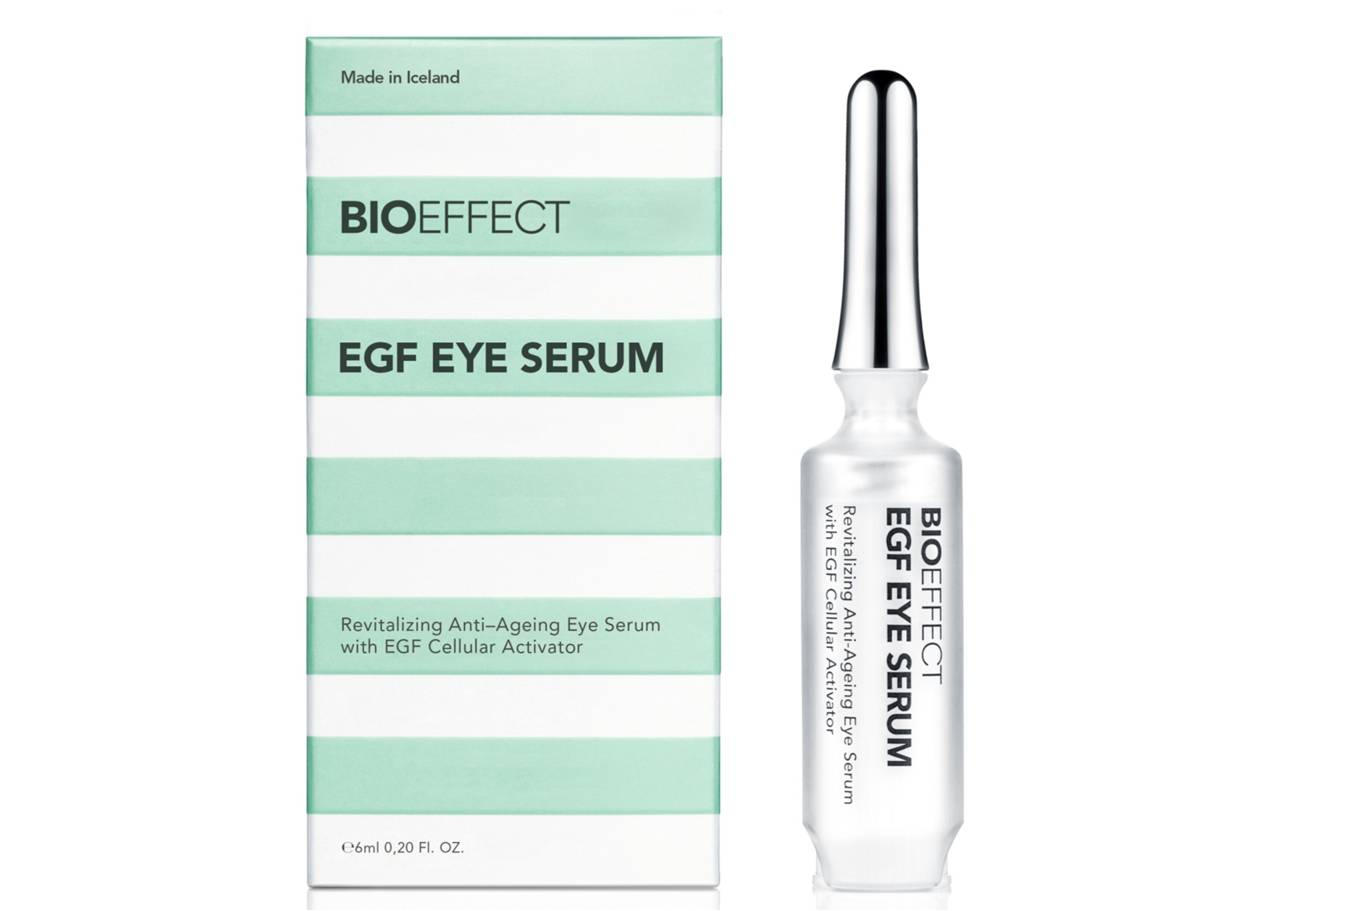 Image of BIOEFFECT EGF EYE SERUM